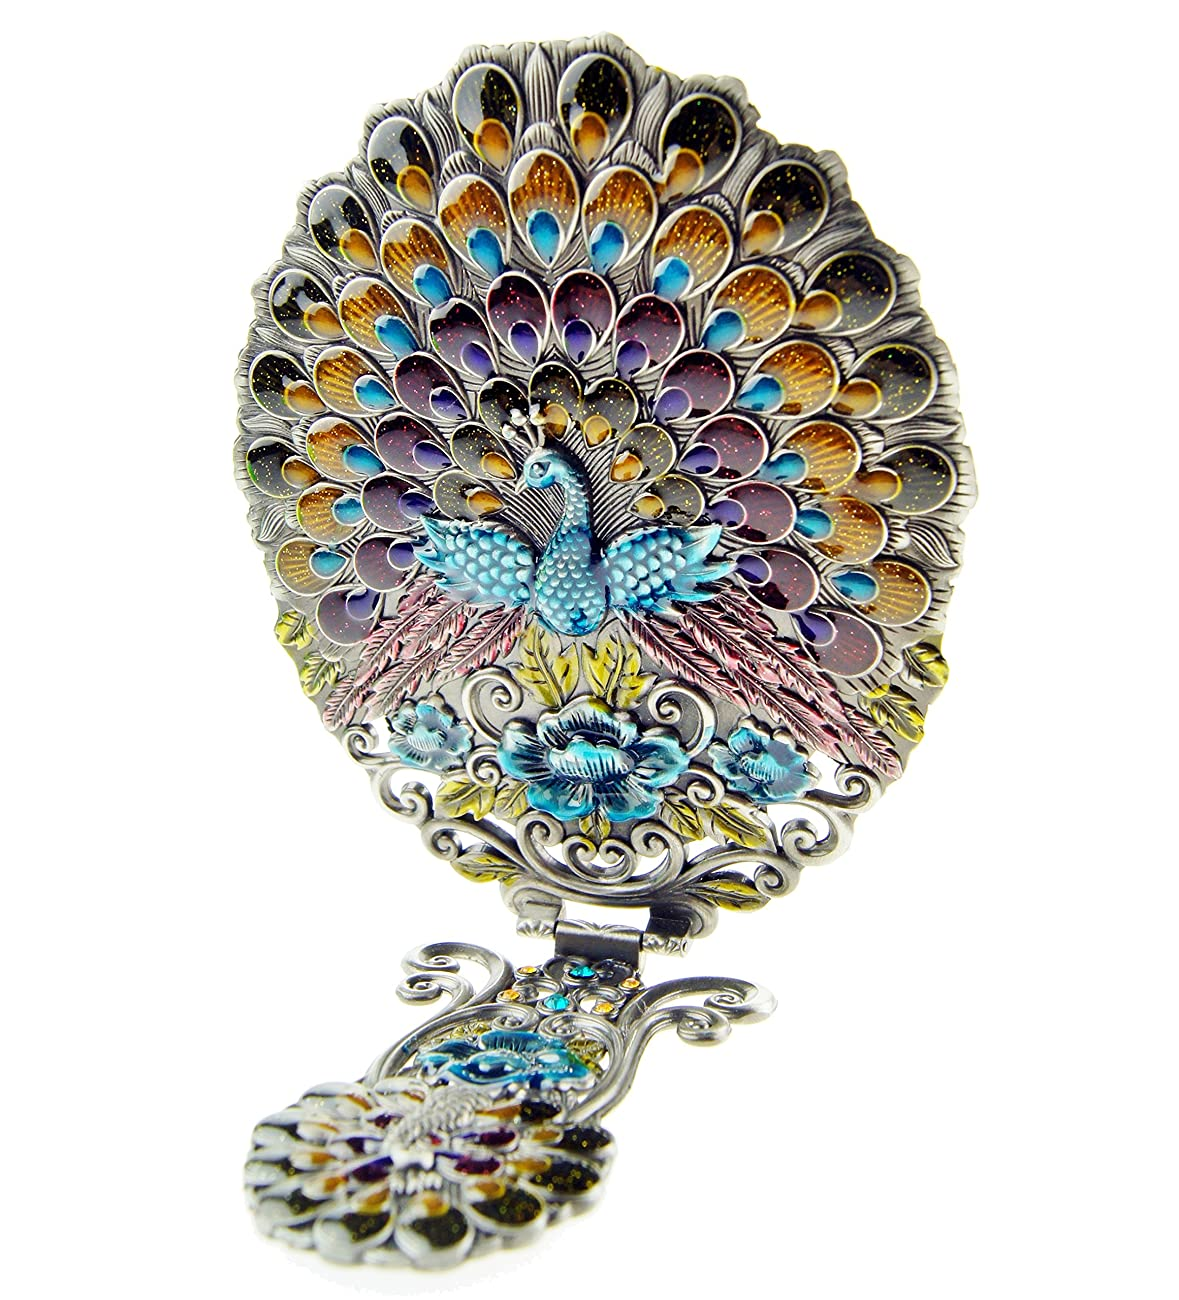 Ivenf Extra Large Size Vintage Oval Make-Up Hand/Table Mirror, Dress Table Decoration, Spreading Tail Peacock, Antique Pewter 3